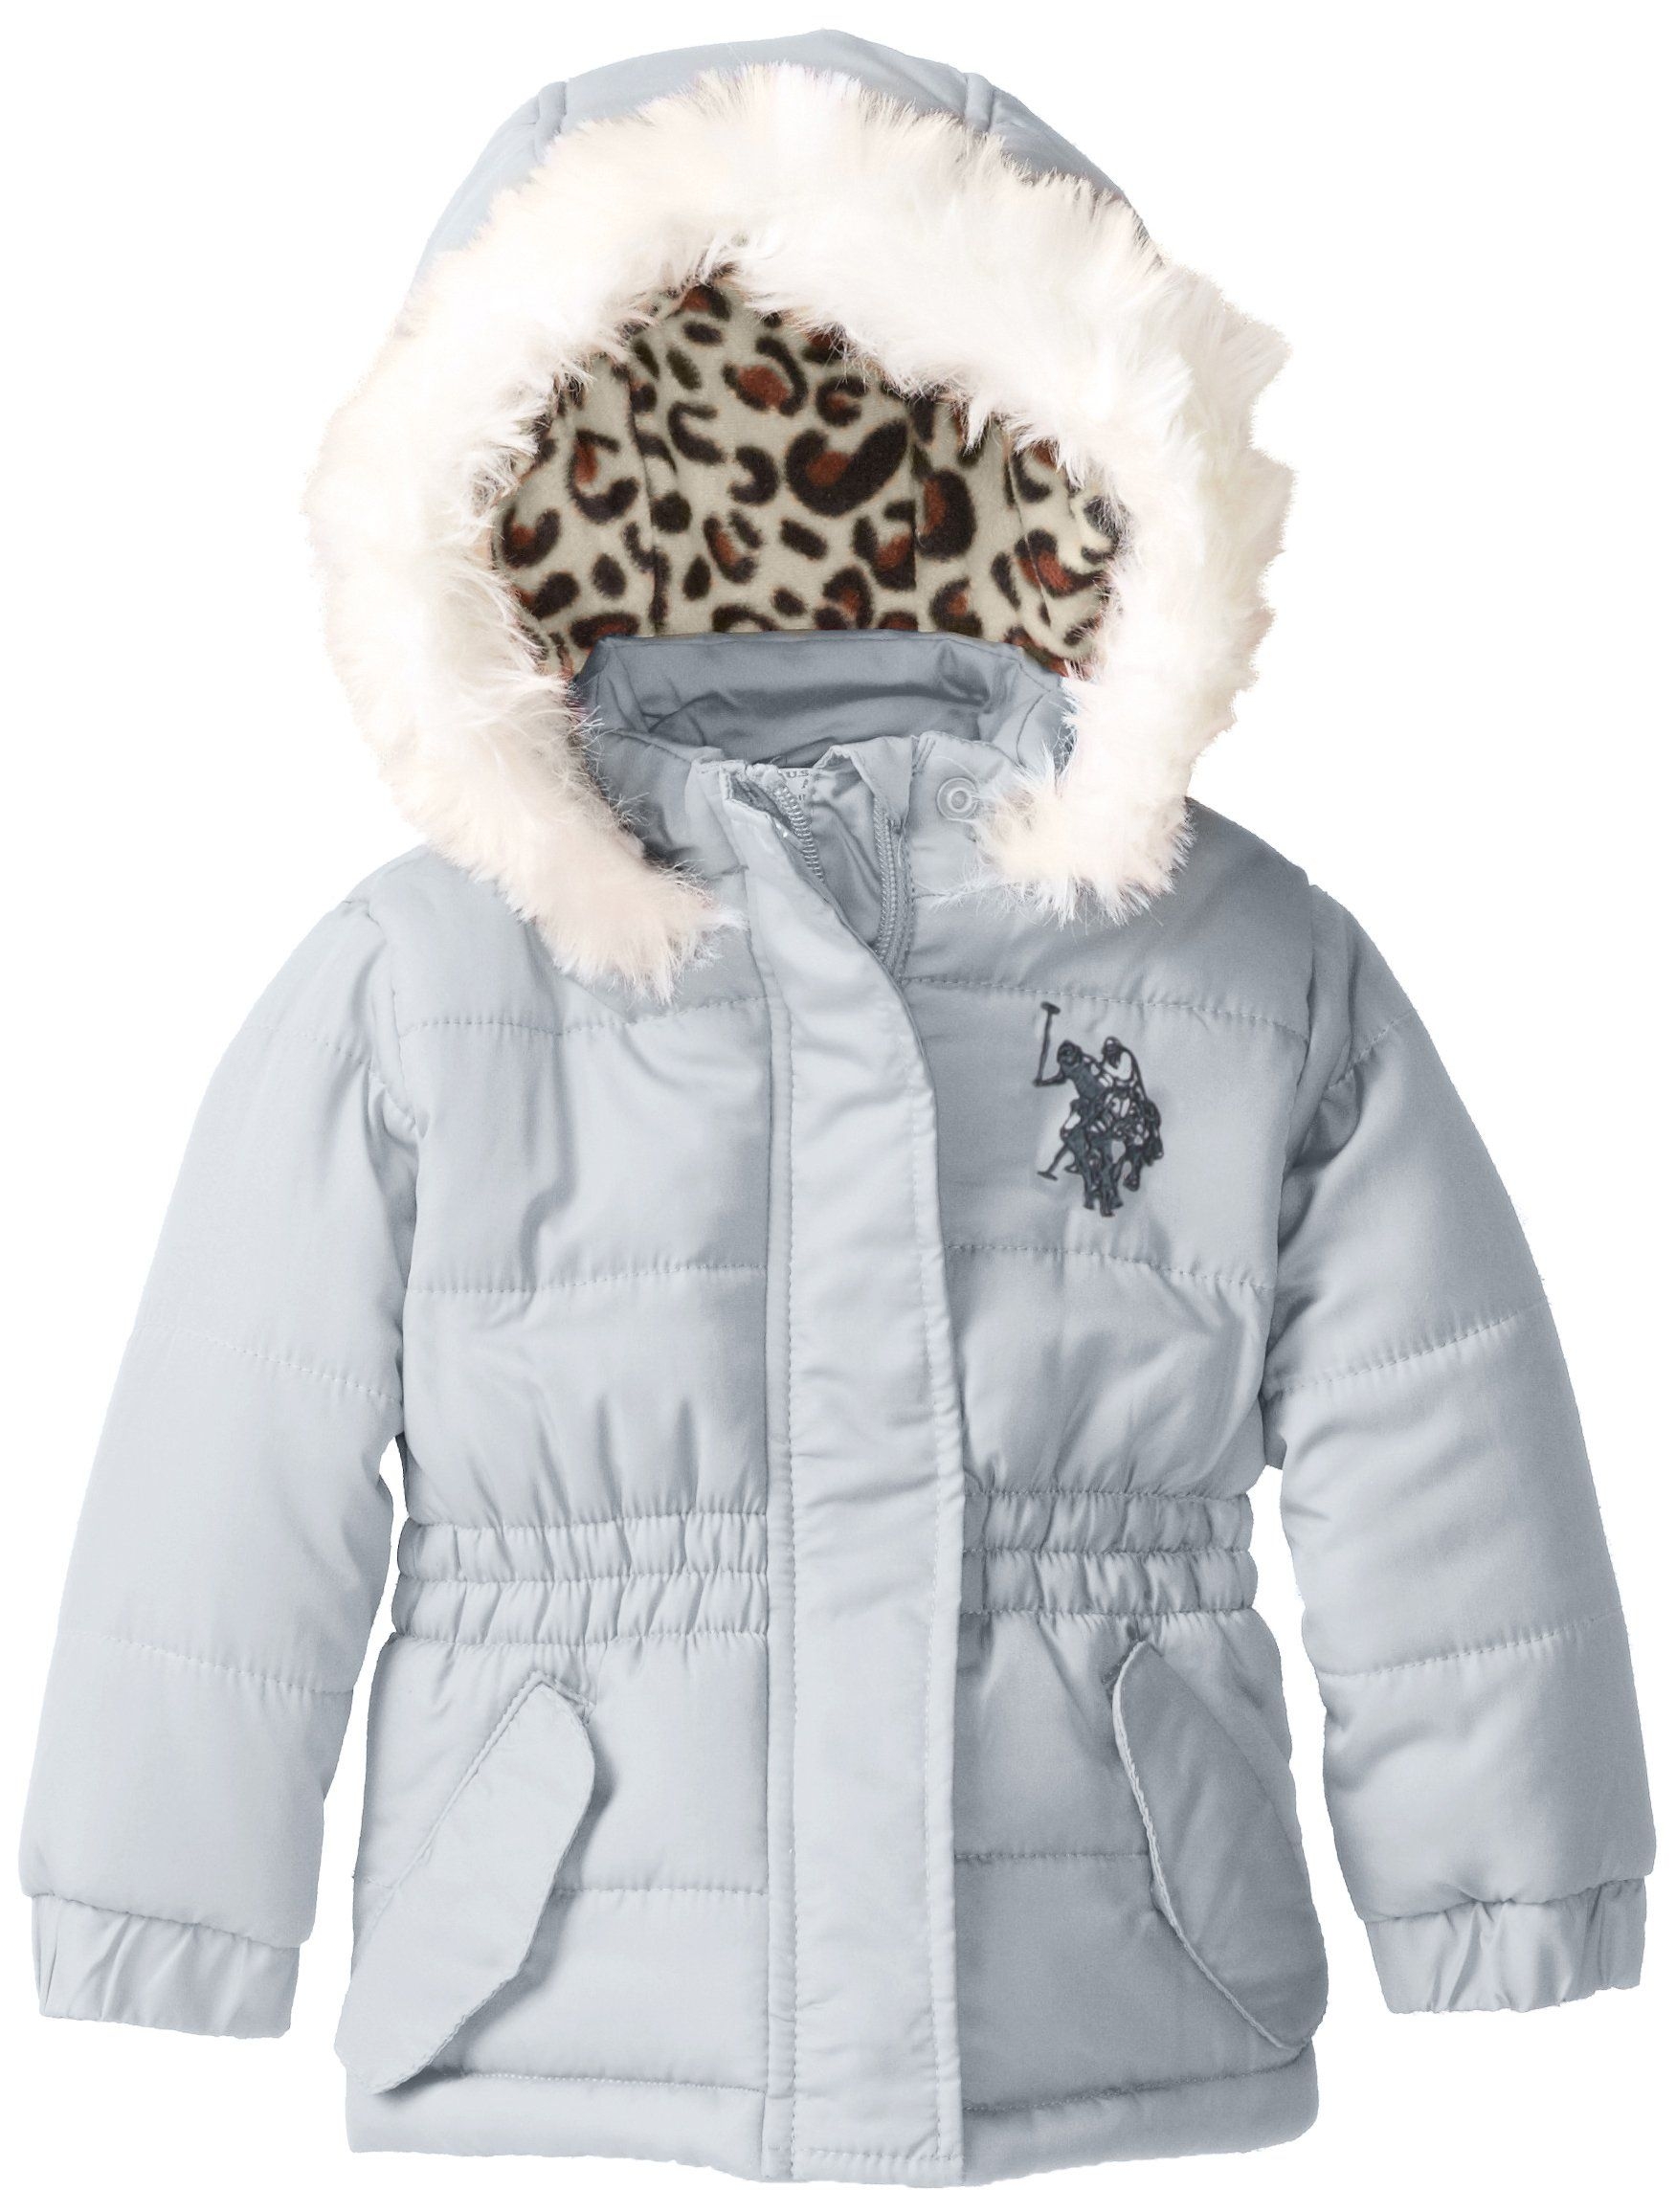 US Polo Association BabyGirls Infant Puffer Jacket with